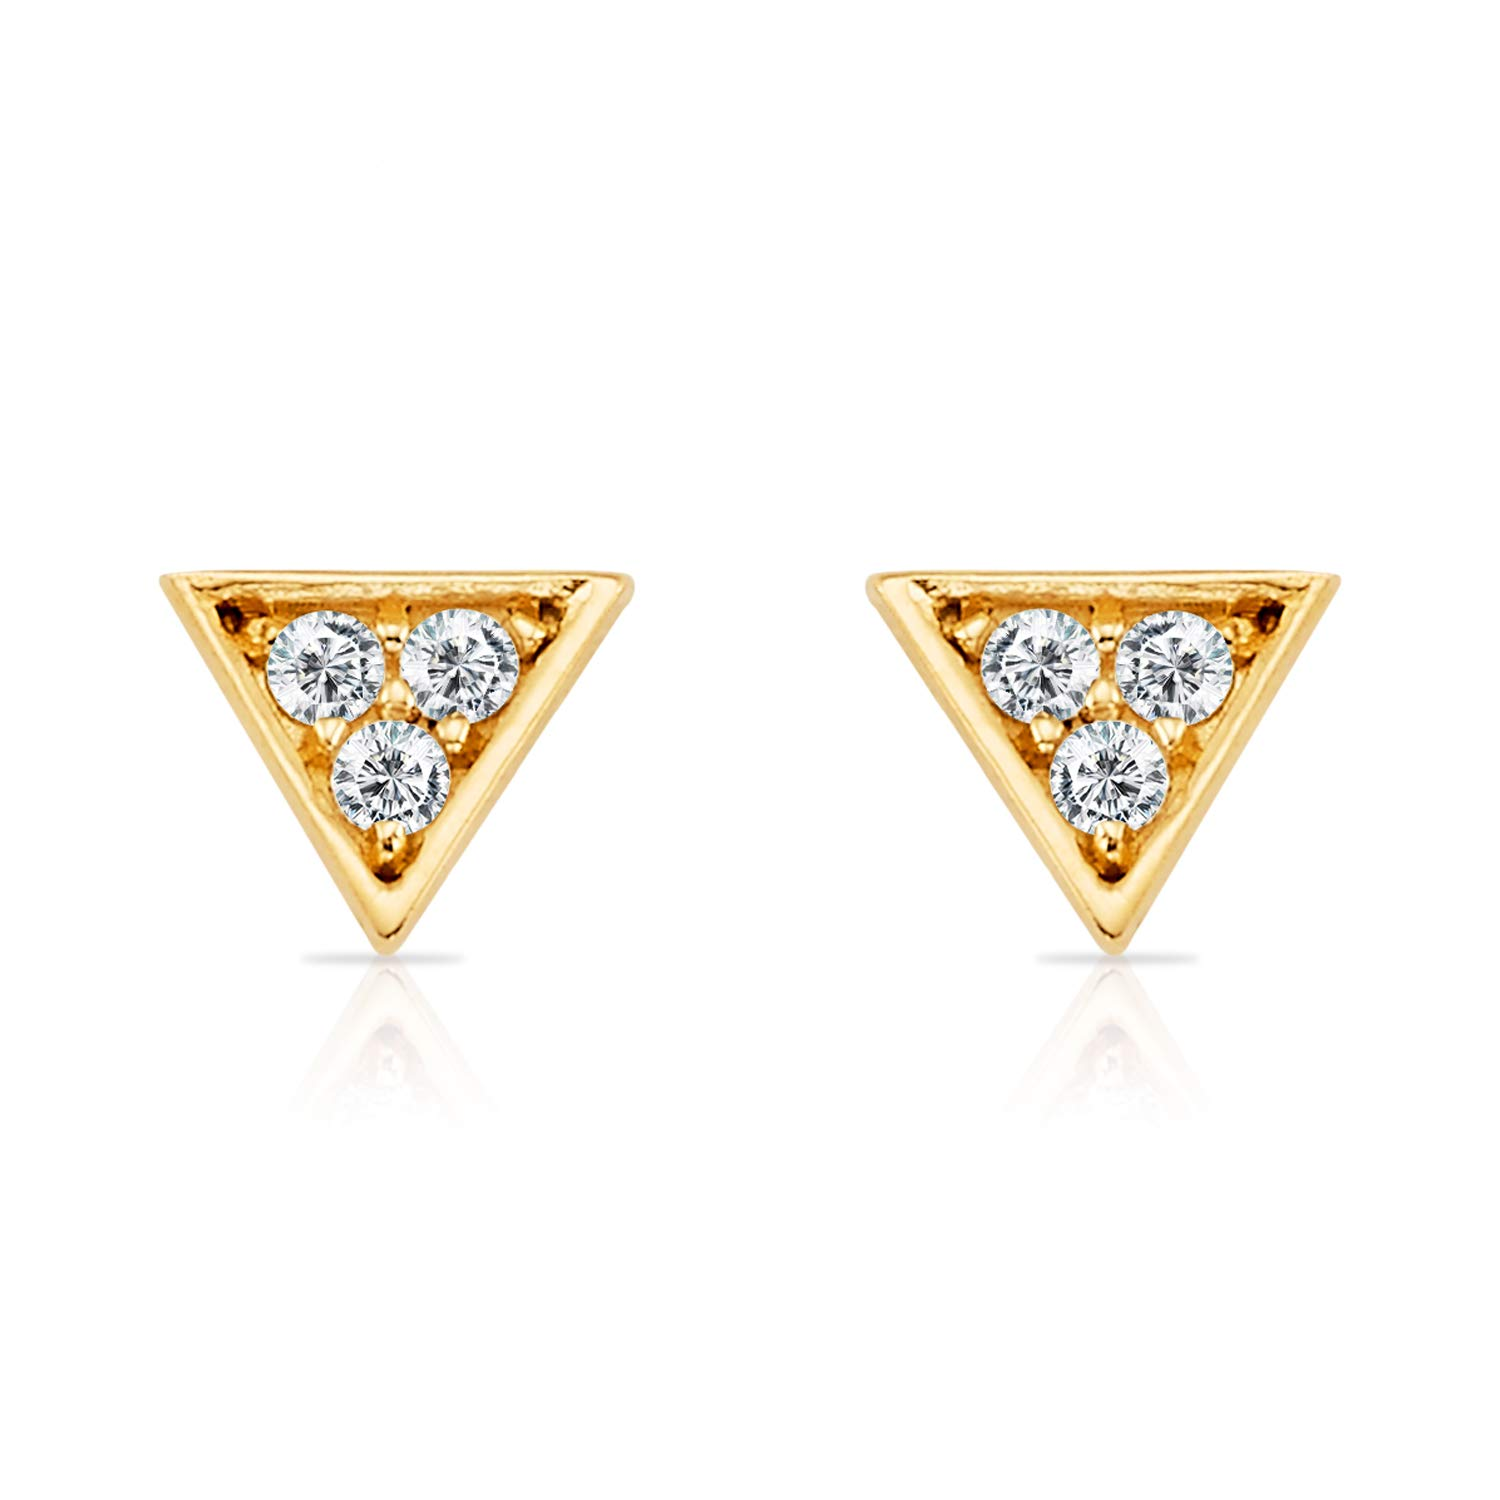 Solid 14k Yellow Gold Tiny Triangle Stud Earrings with 3 CZs Inset for Women and Girls